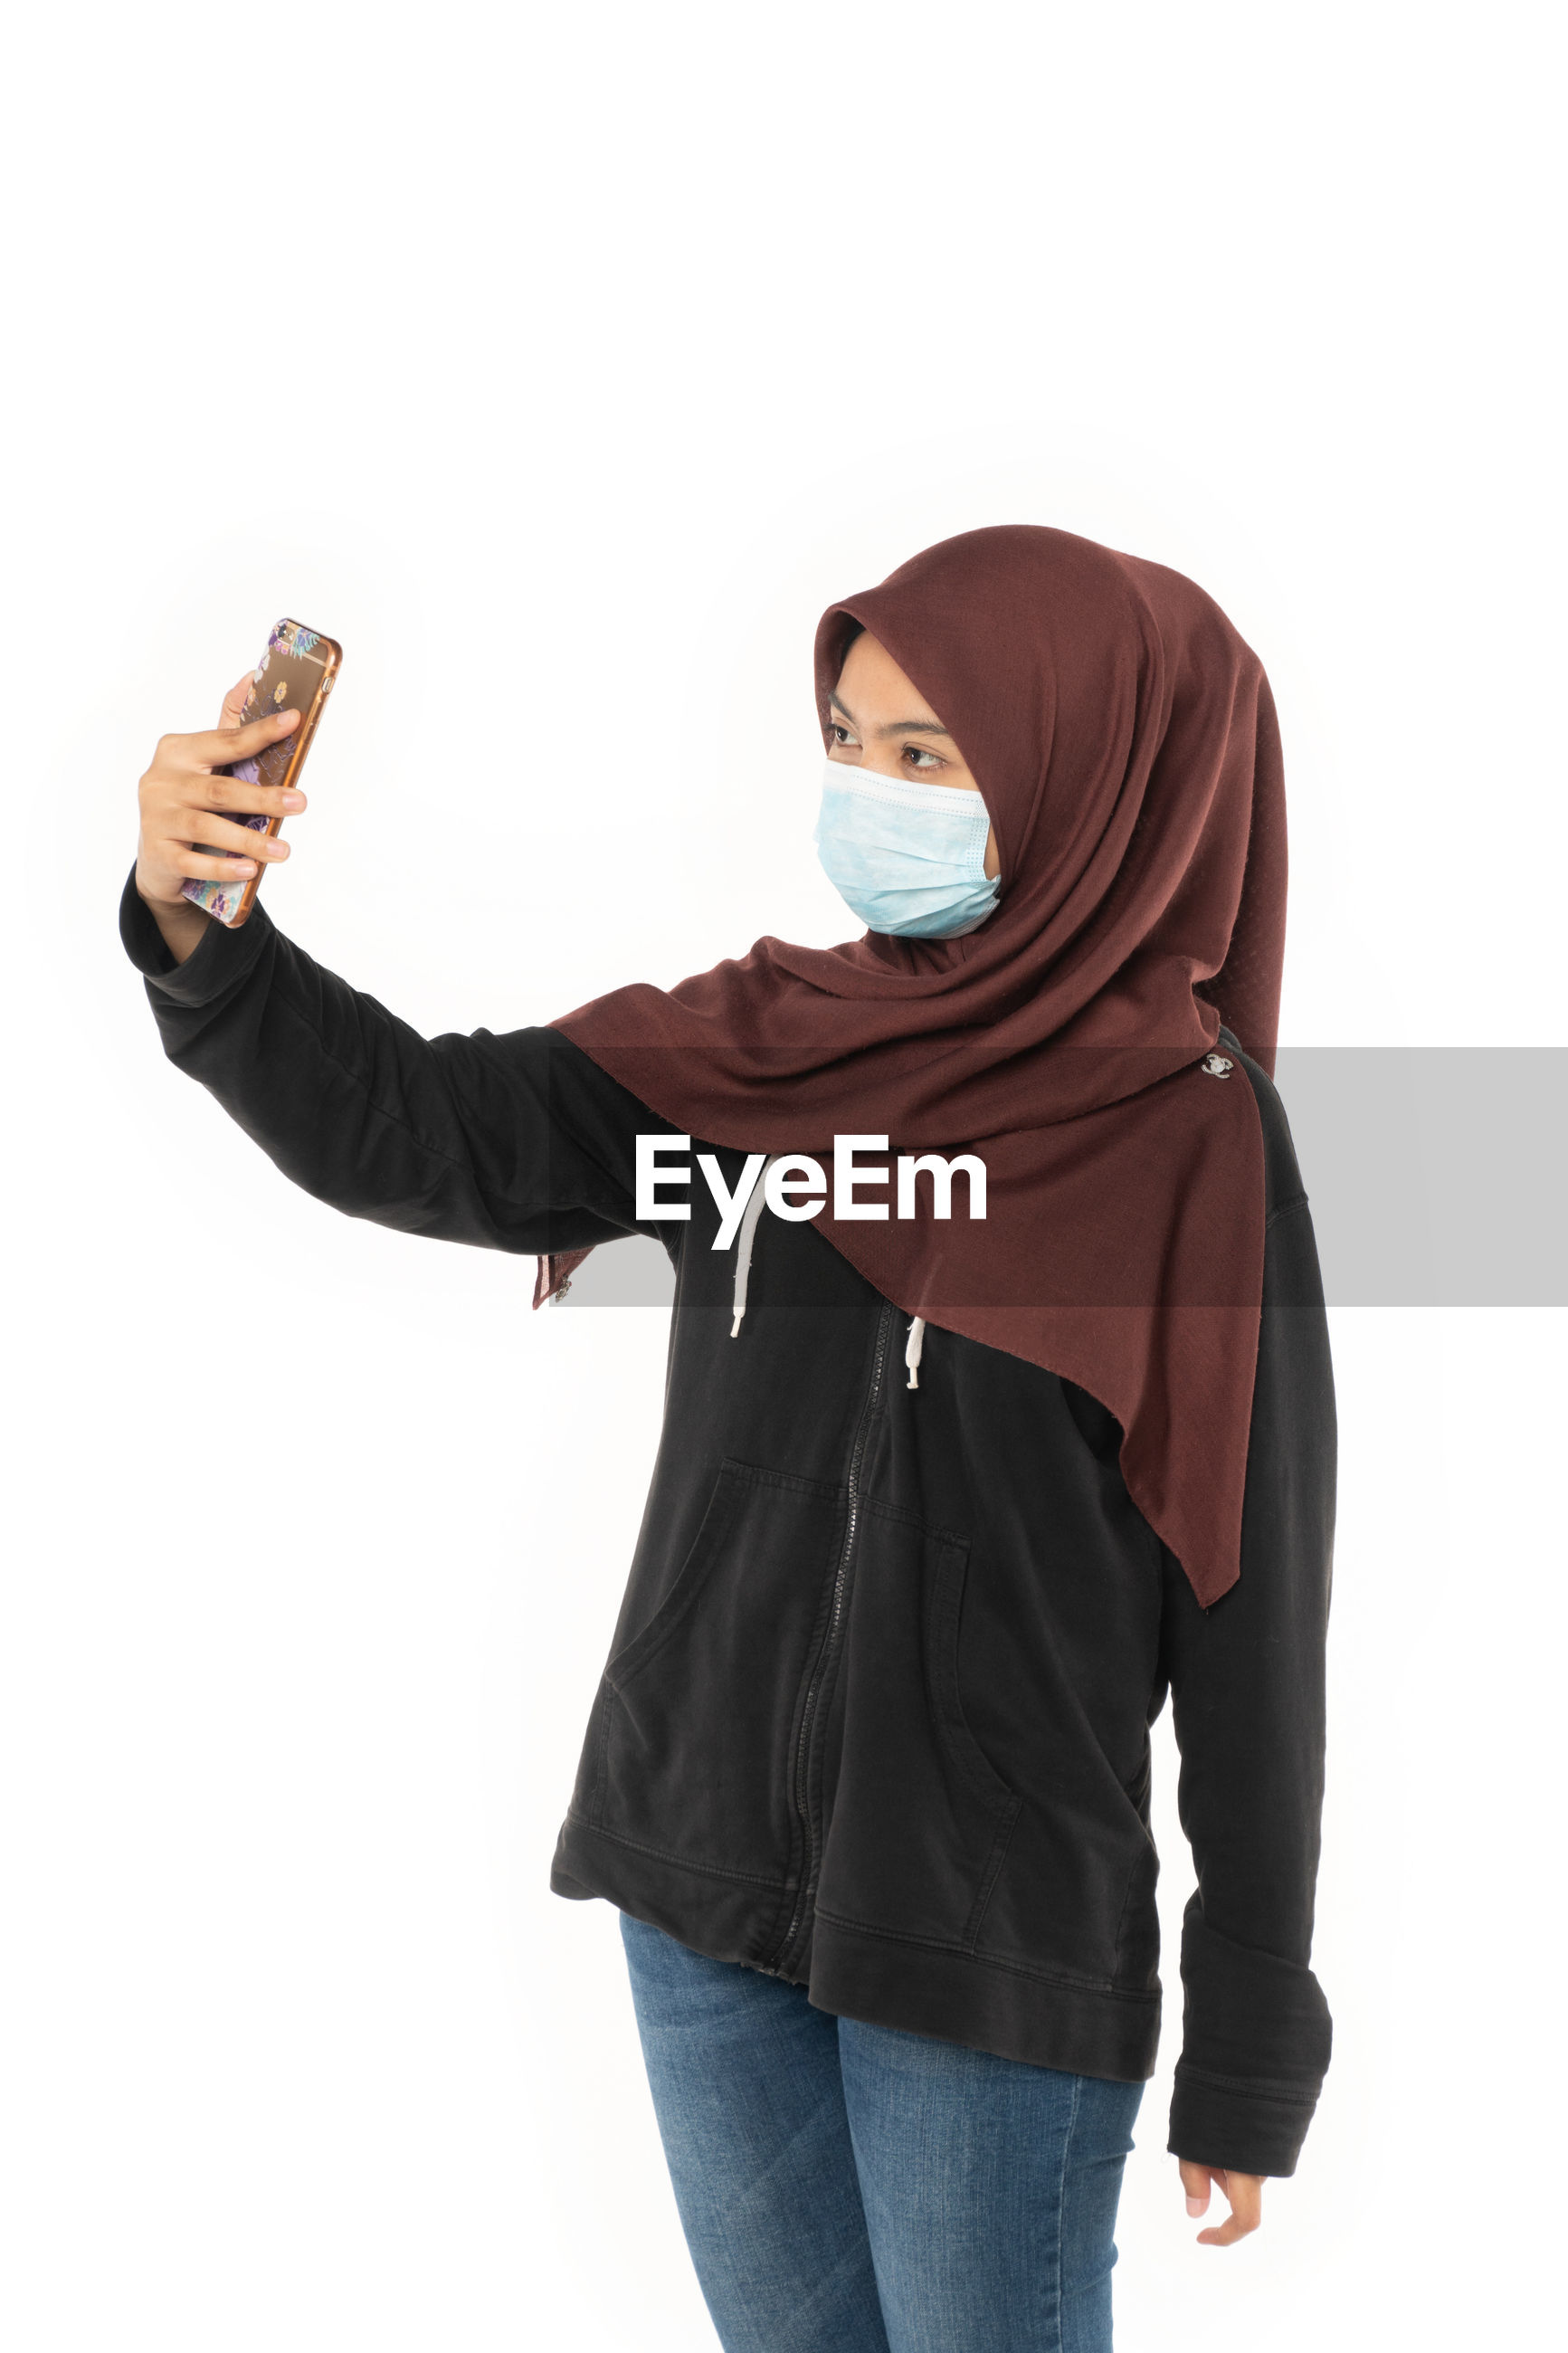 Woman in hijab wearing pollution mask while taking selfie against white background